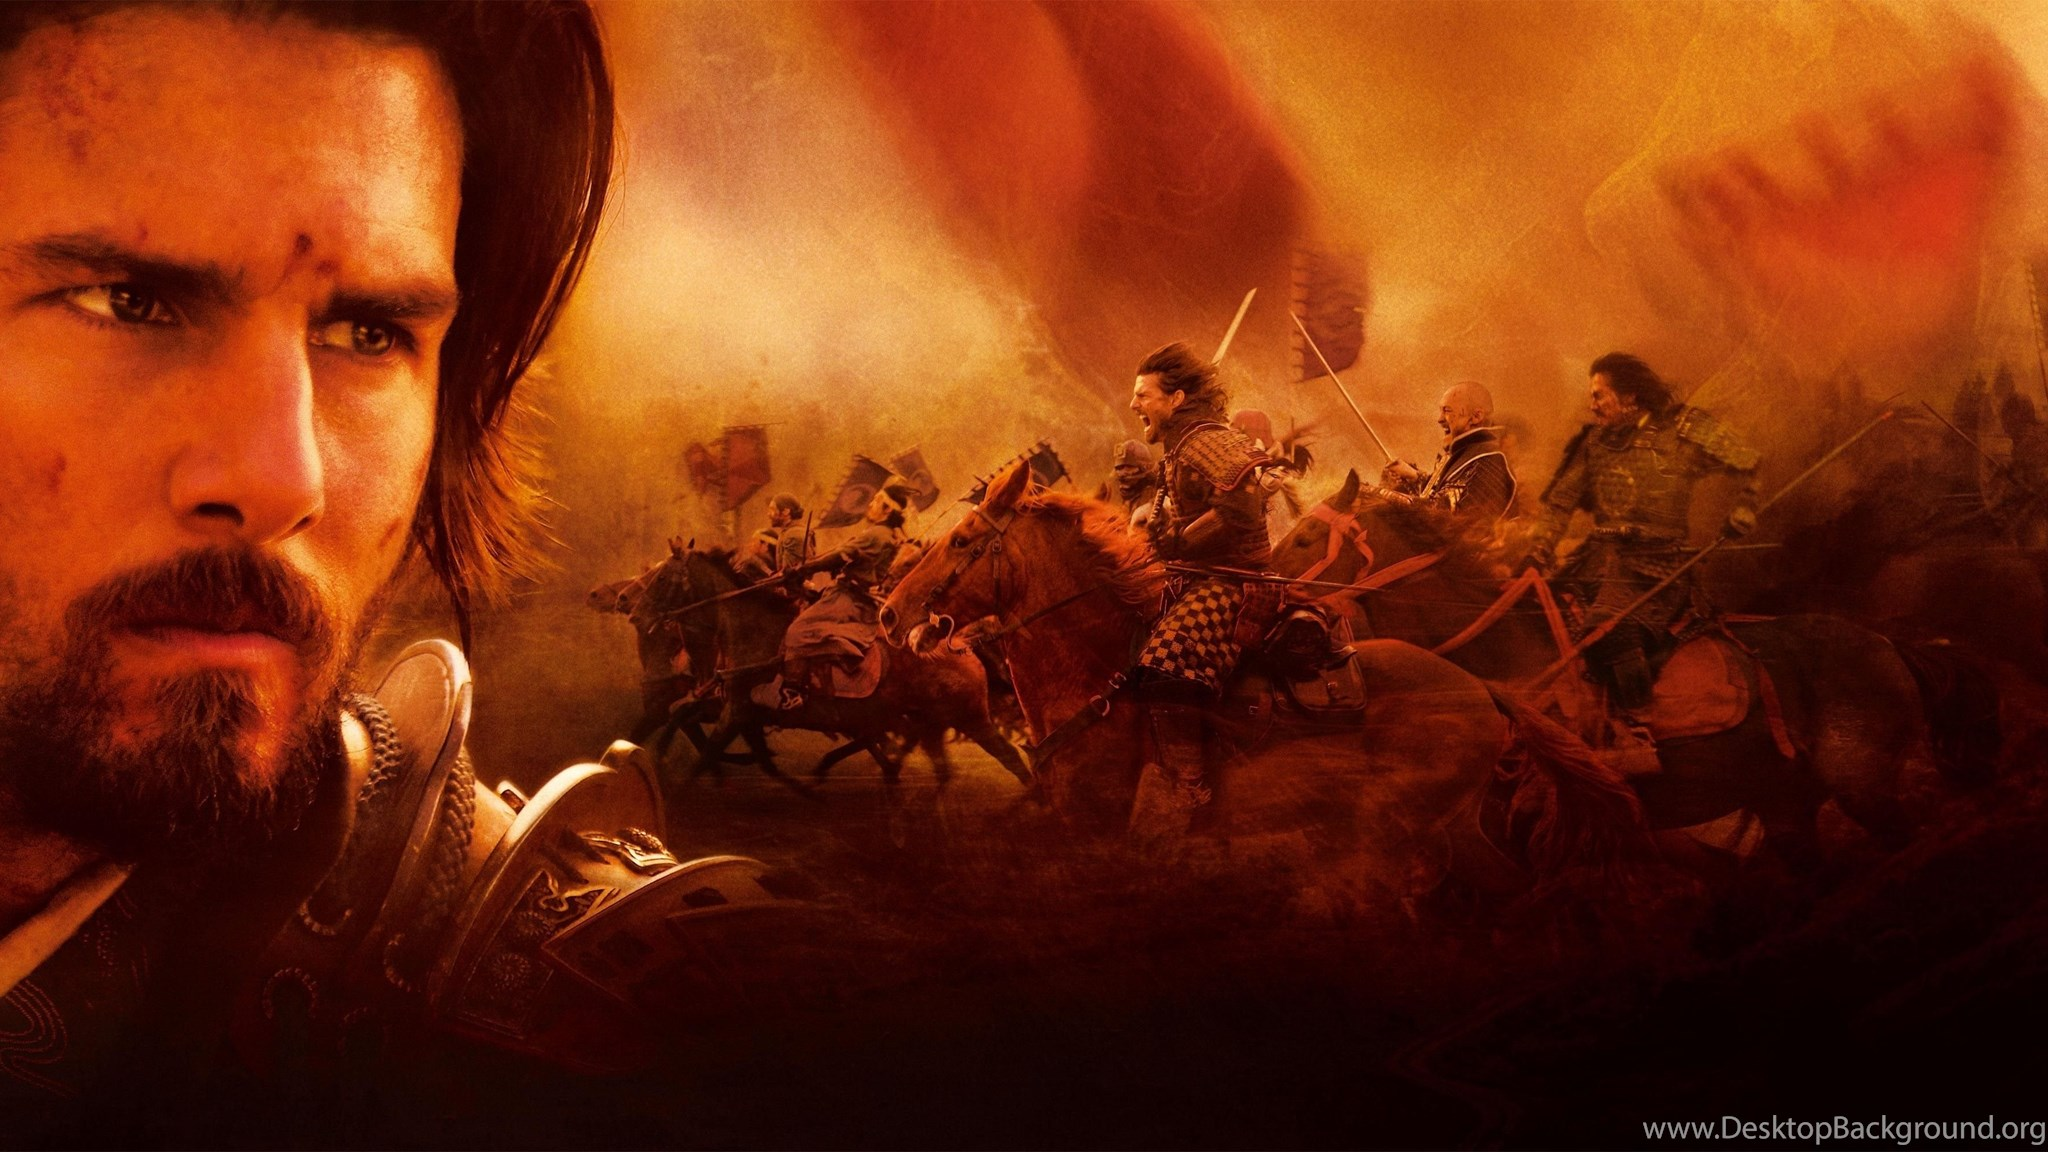 the last samurai and flames and From the opening voiceover and title to the final scene, the last samurai is an historical disaster.